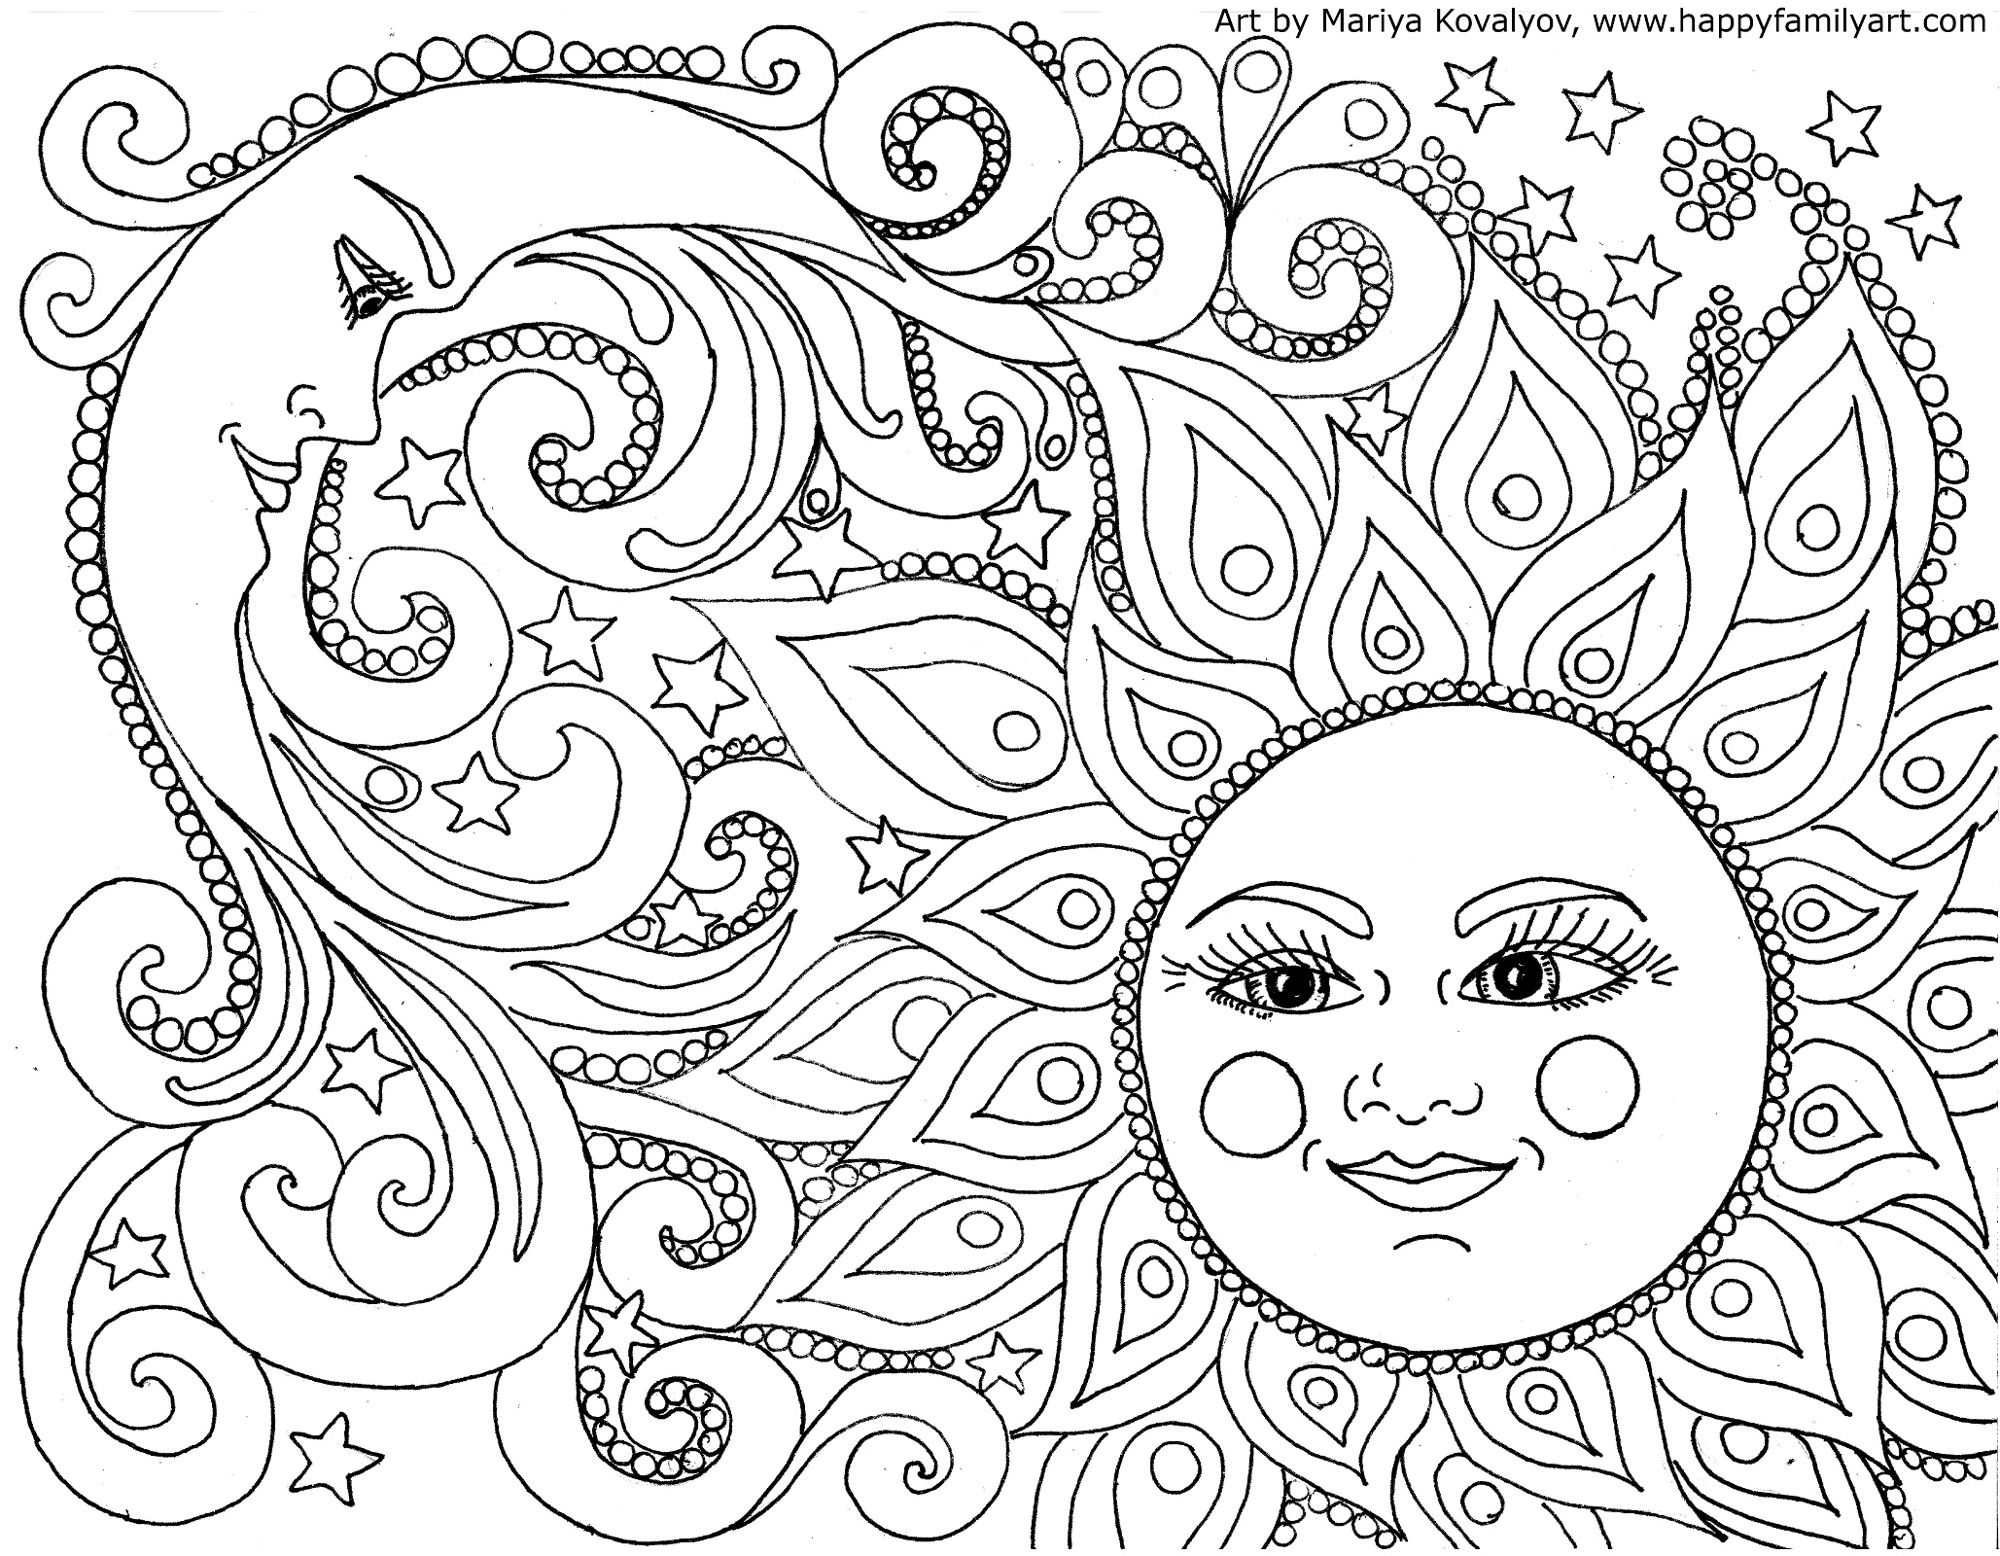 I made many great fun and original coloring pages color your heart out printable adult